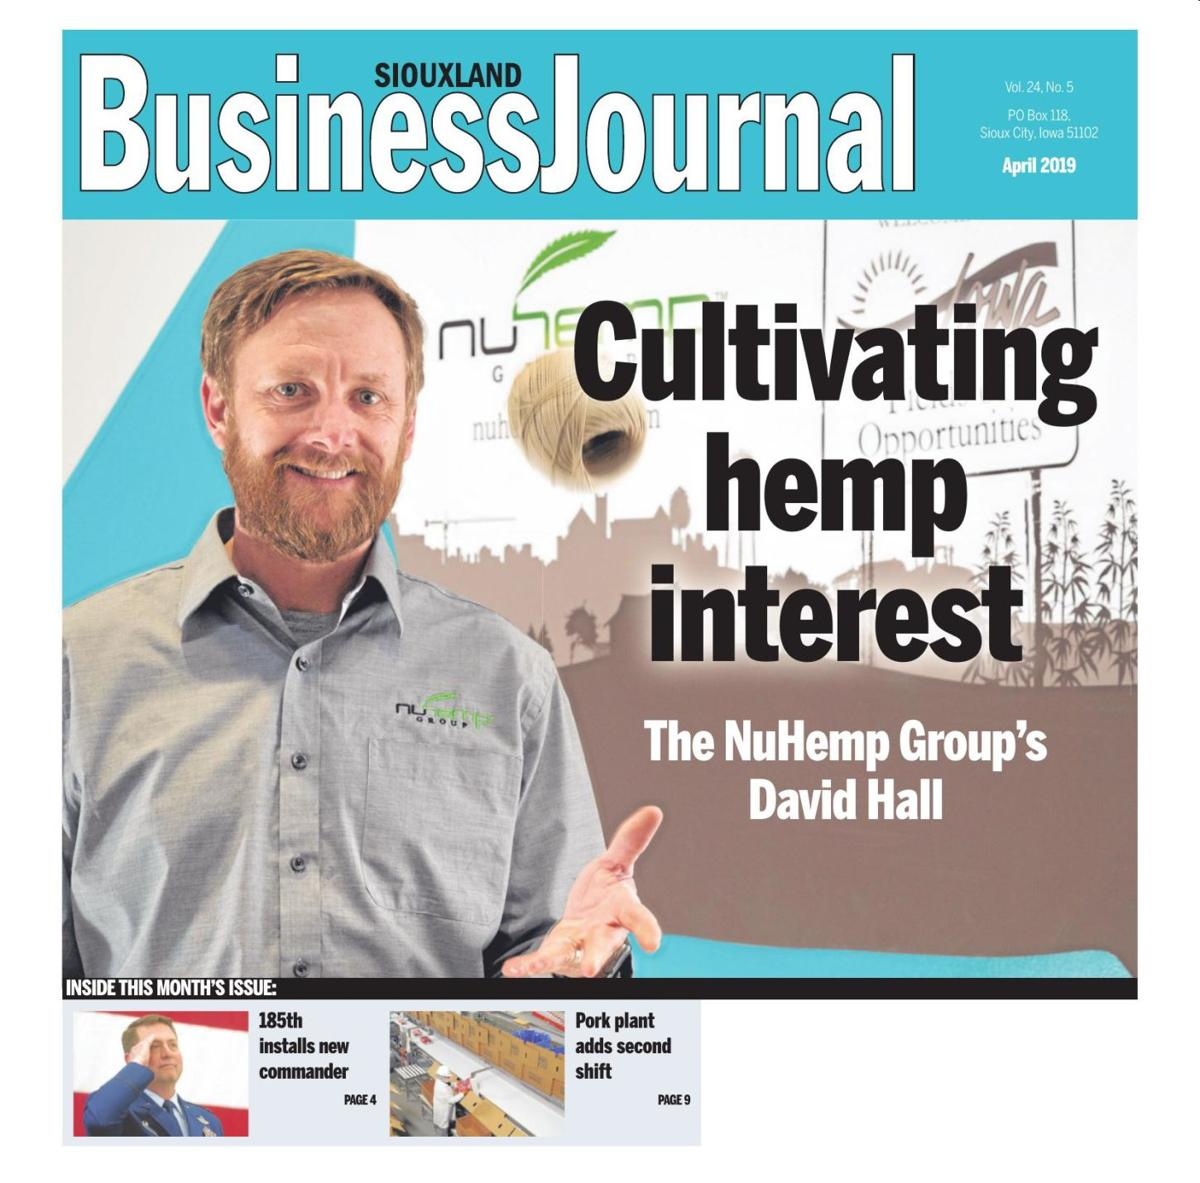 Siouxland Business Journal - April 2019